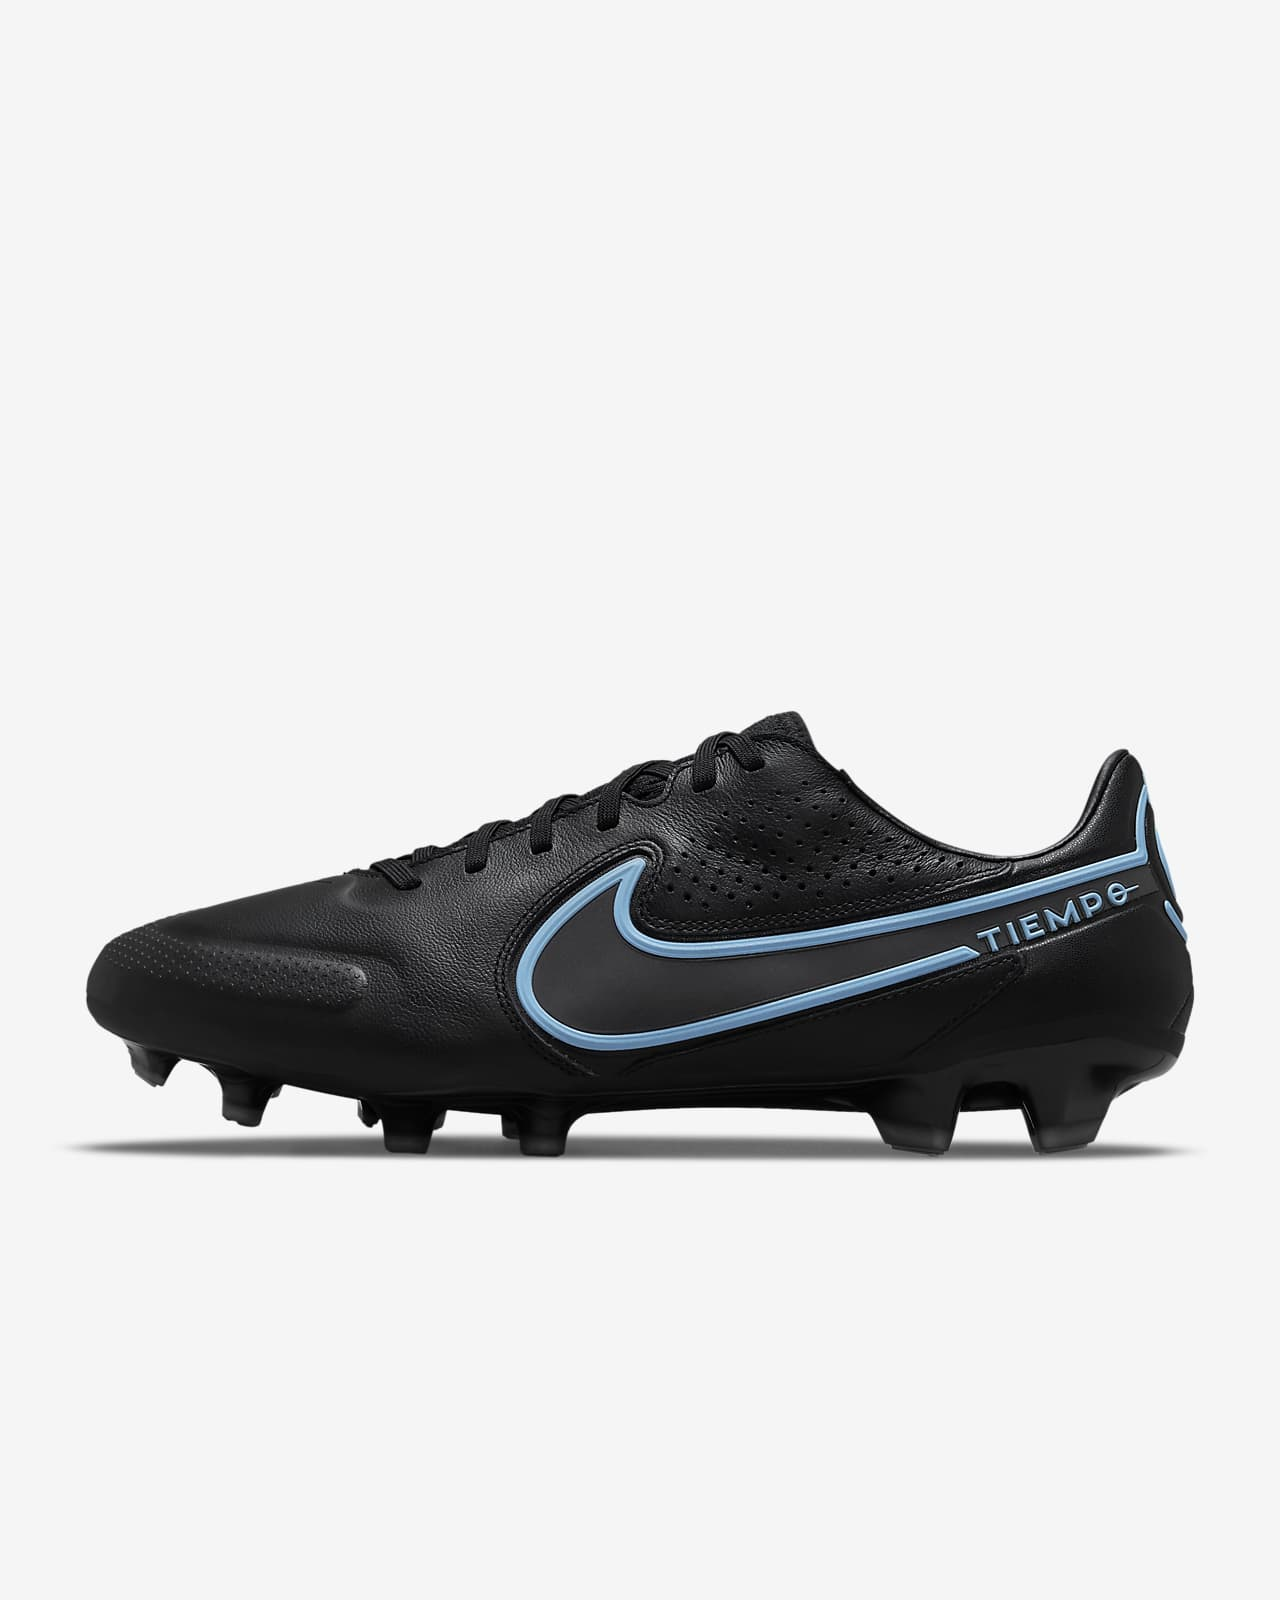 Nike Tiempo Legend 9 Pro FG Firm-Ground Soccer Cleat